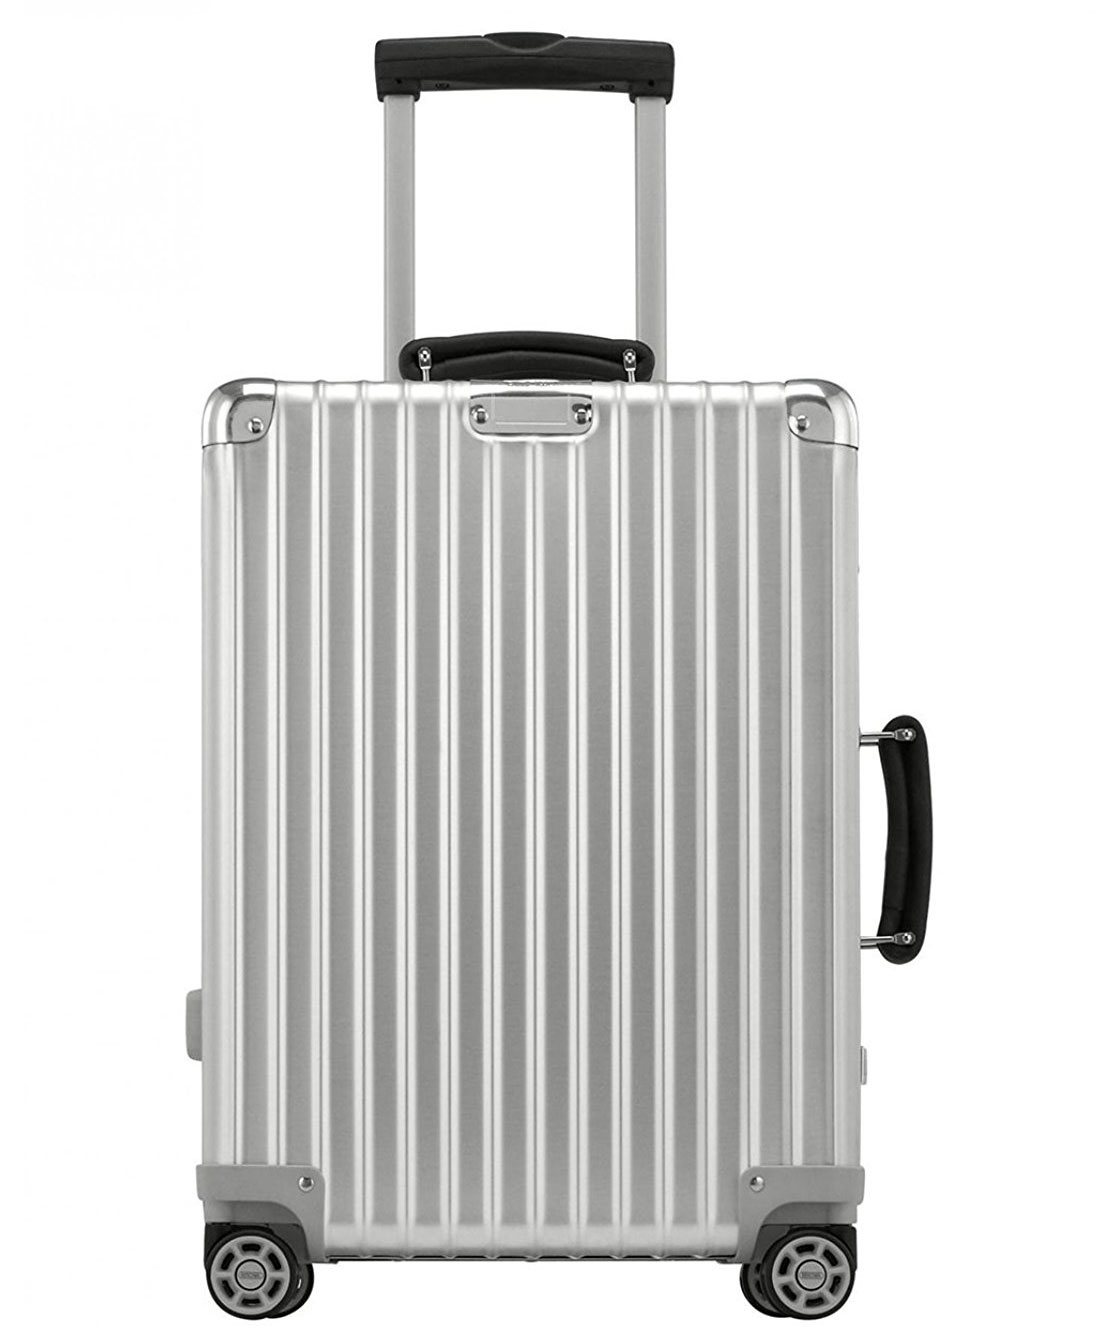 Rimowa Classic Flight IATA Carry on Luggage 21  Inch Cabin Multiwheel 33L TSA Suitcase Silver